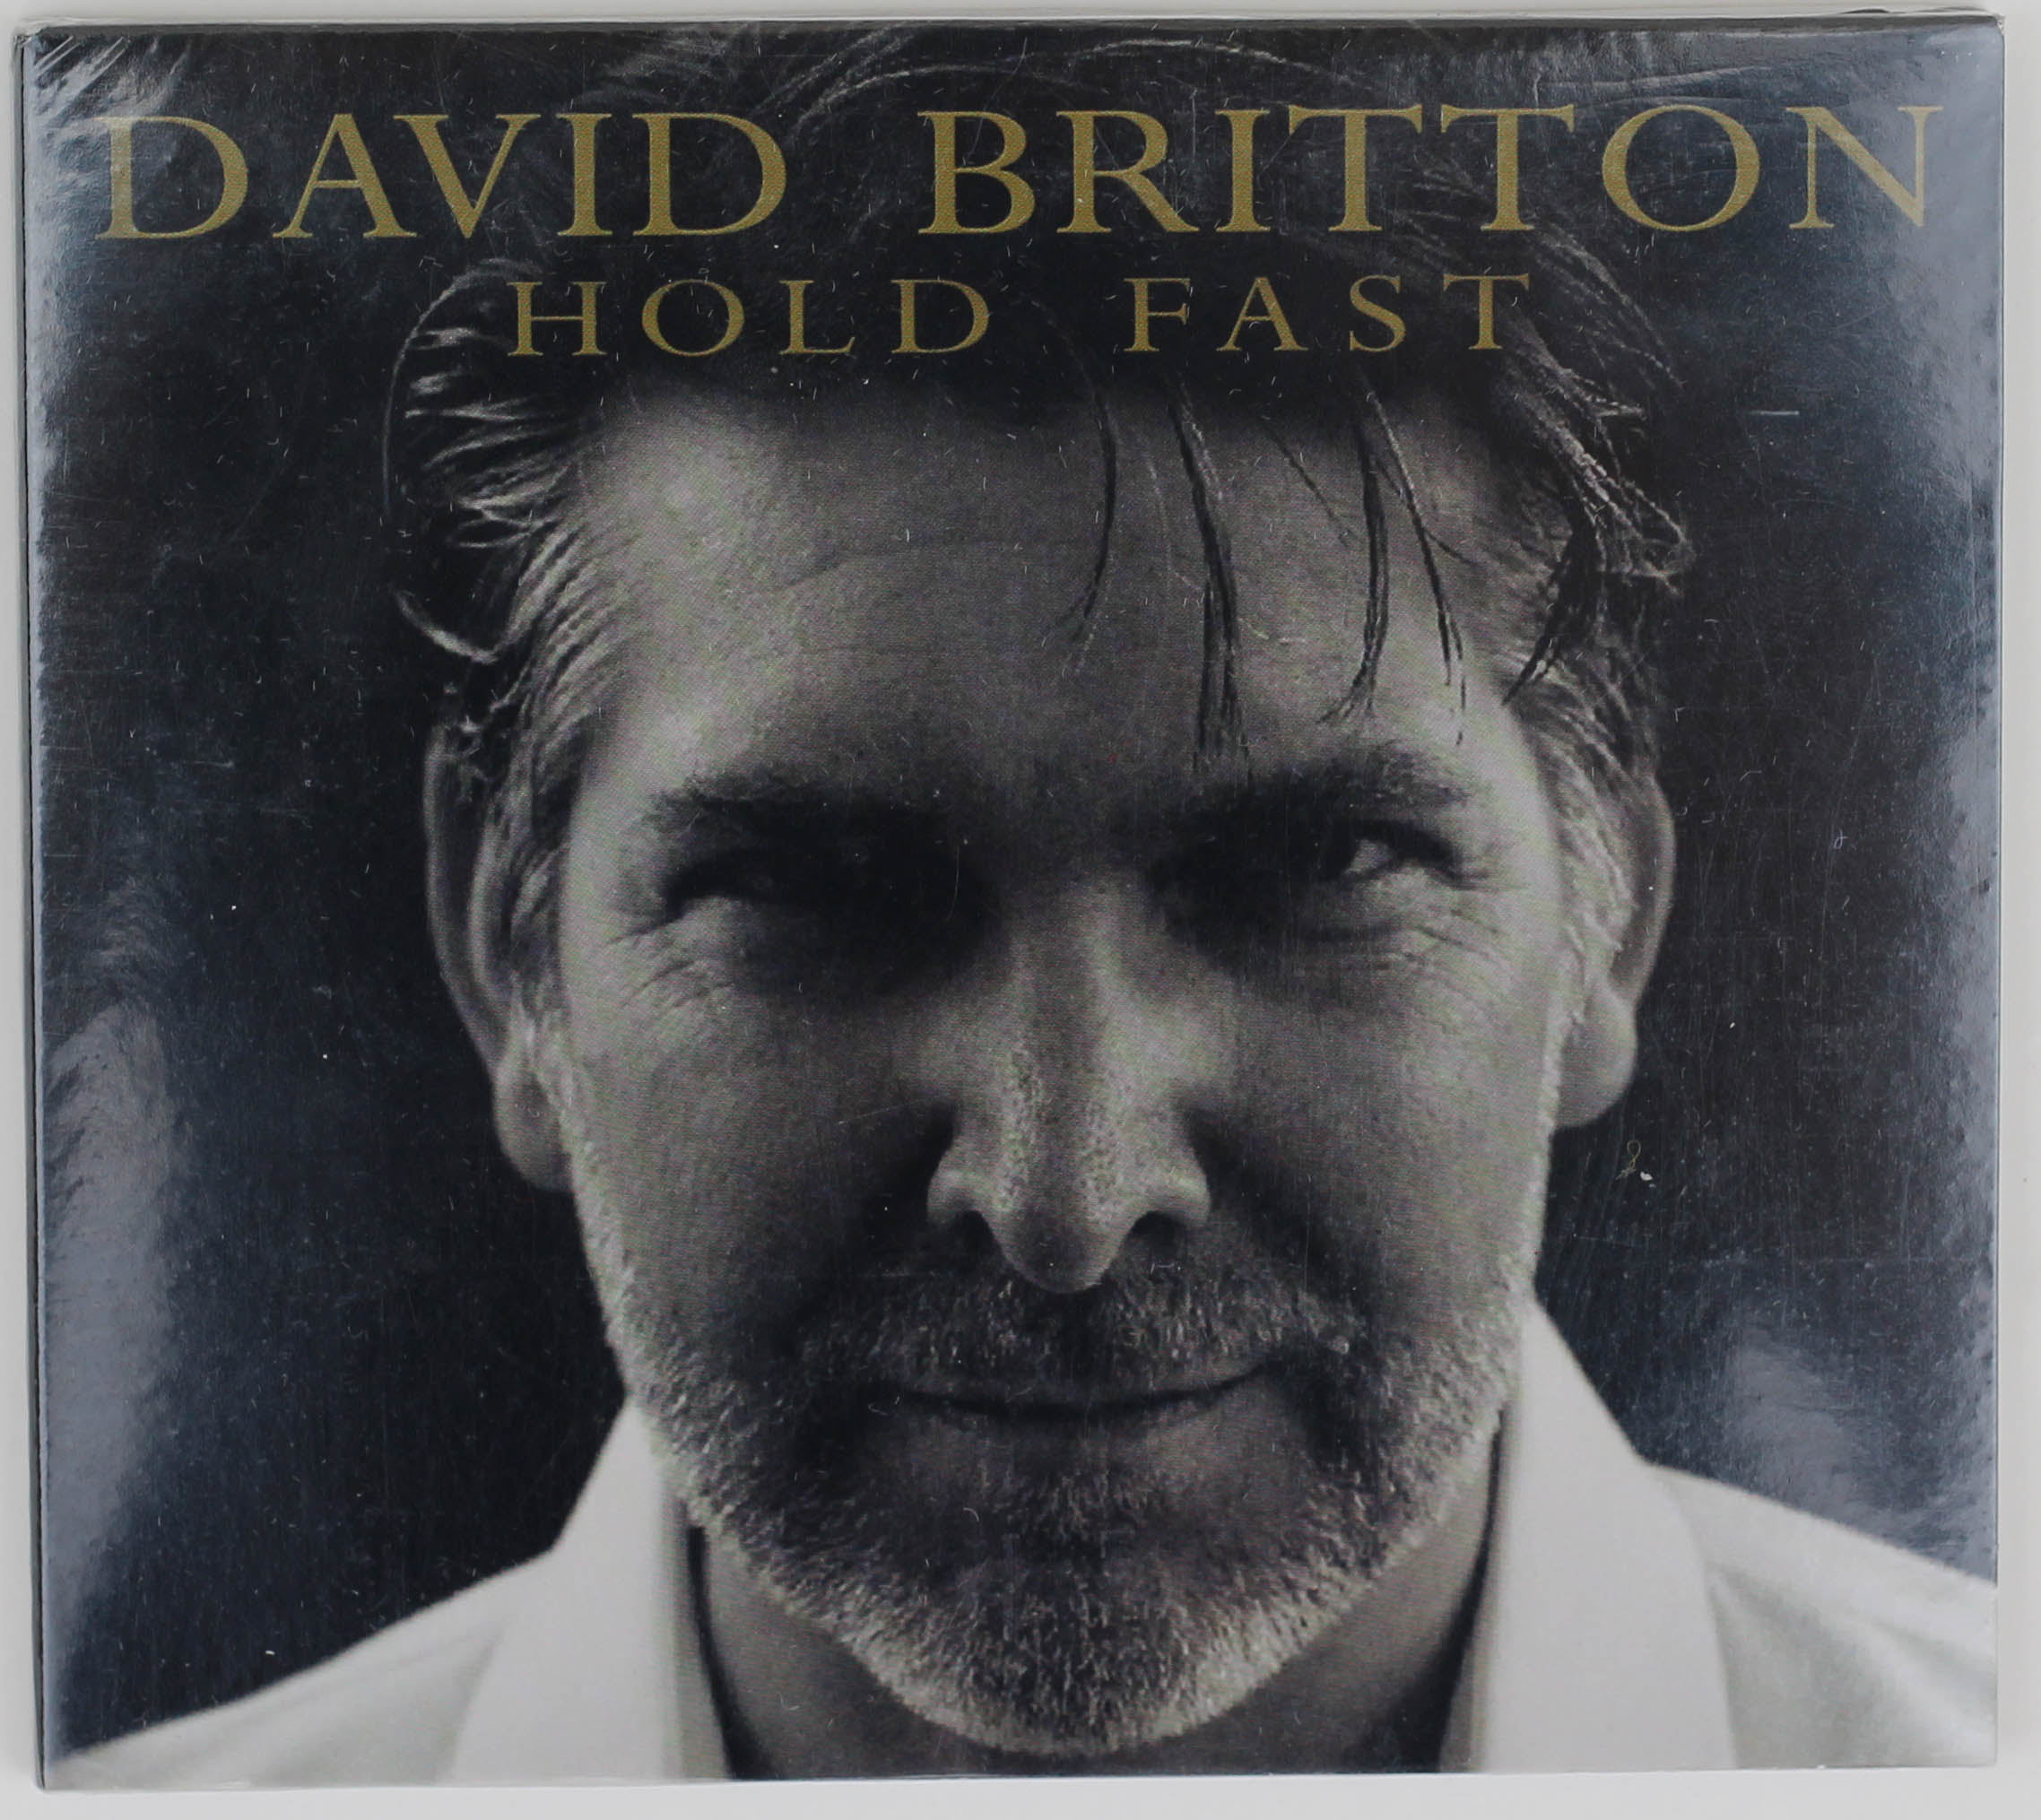 Image for the Hold Fast - David Britton CD product